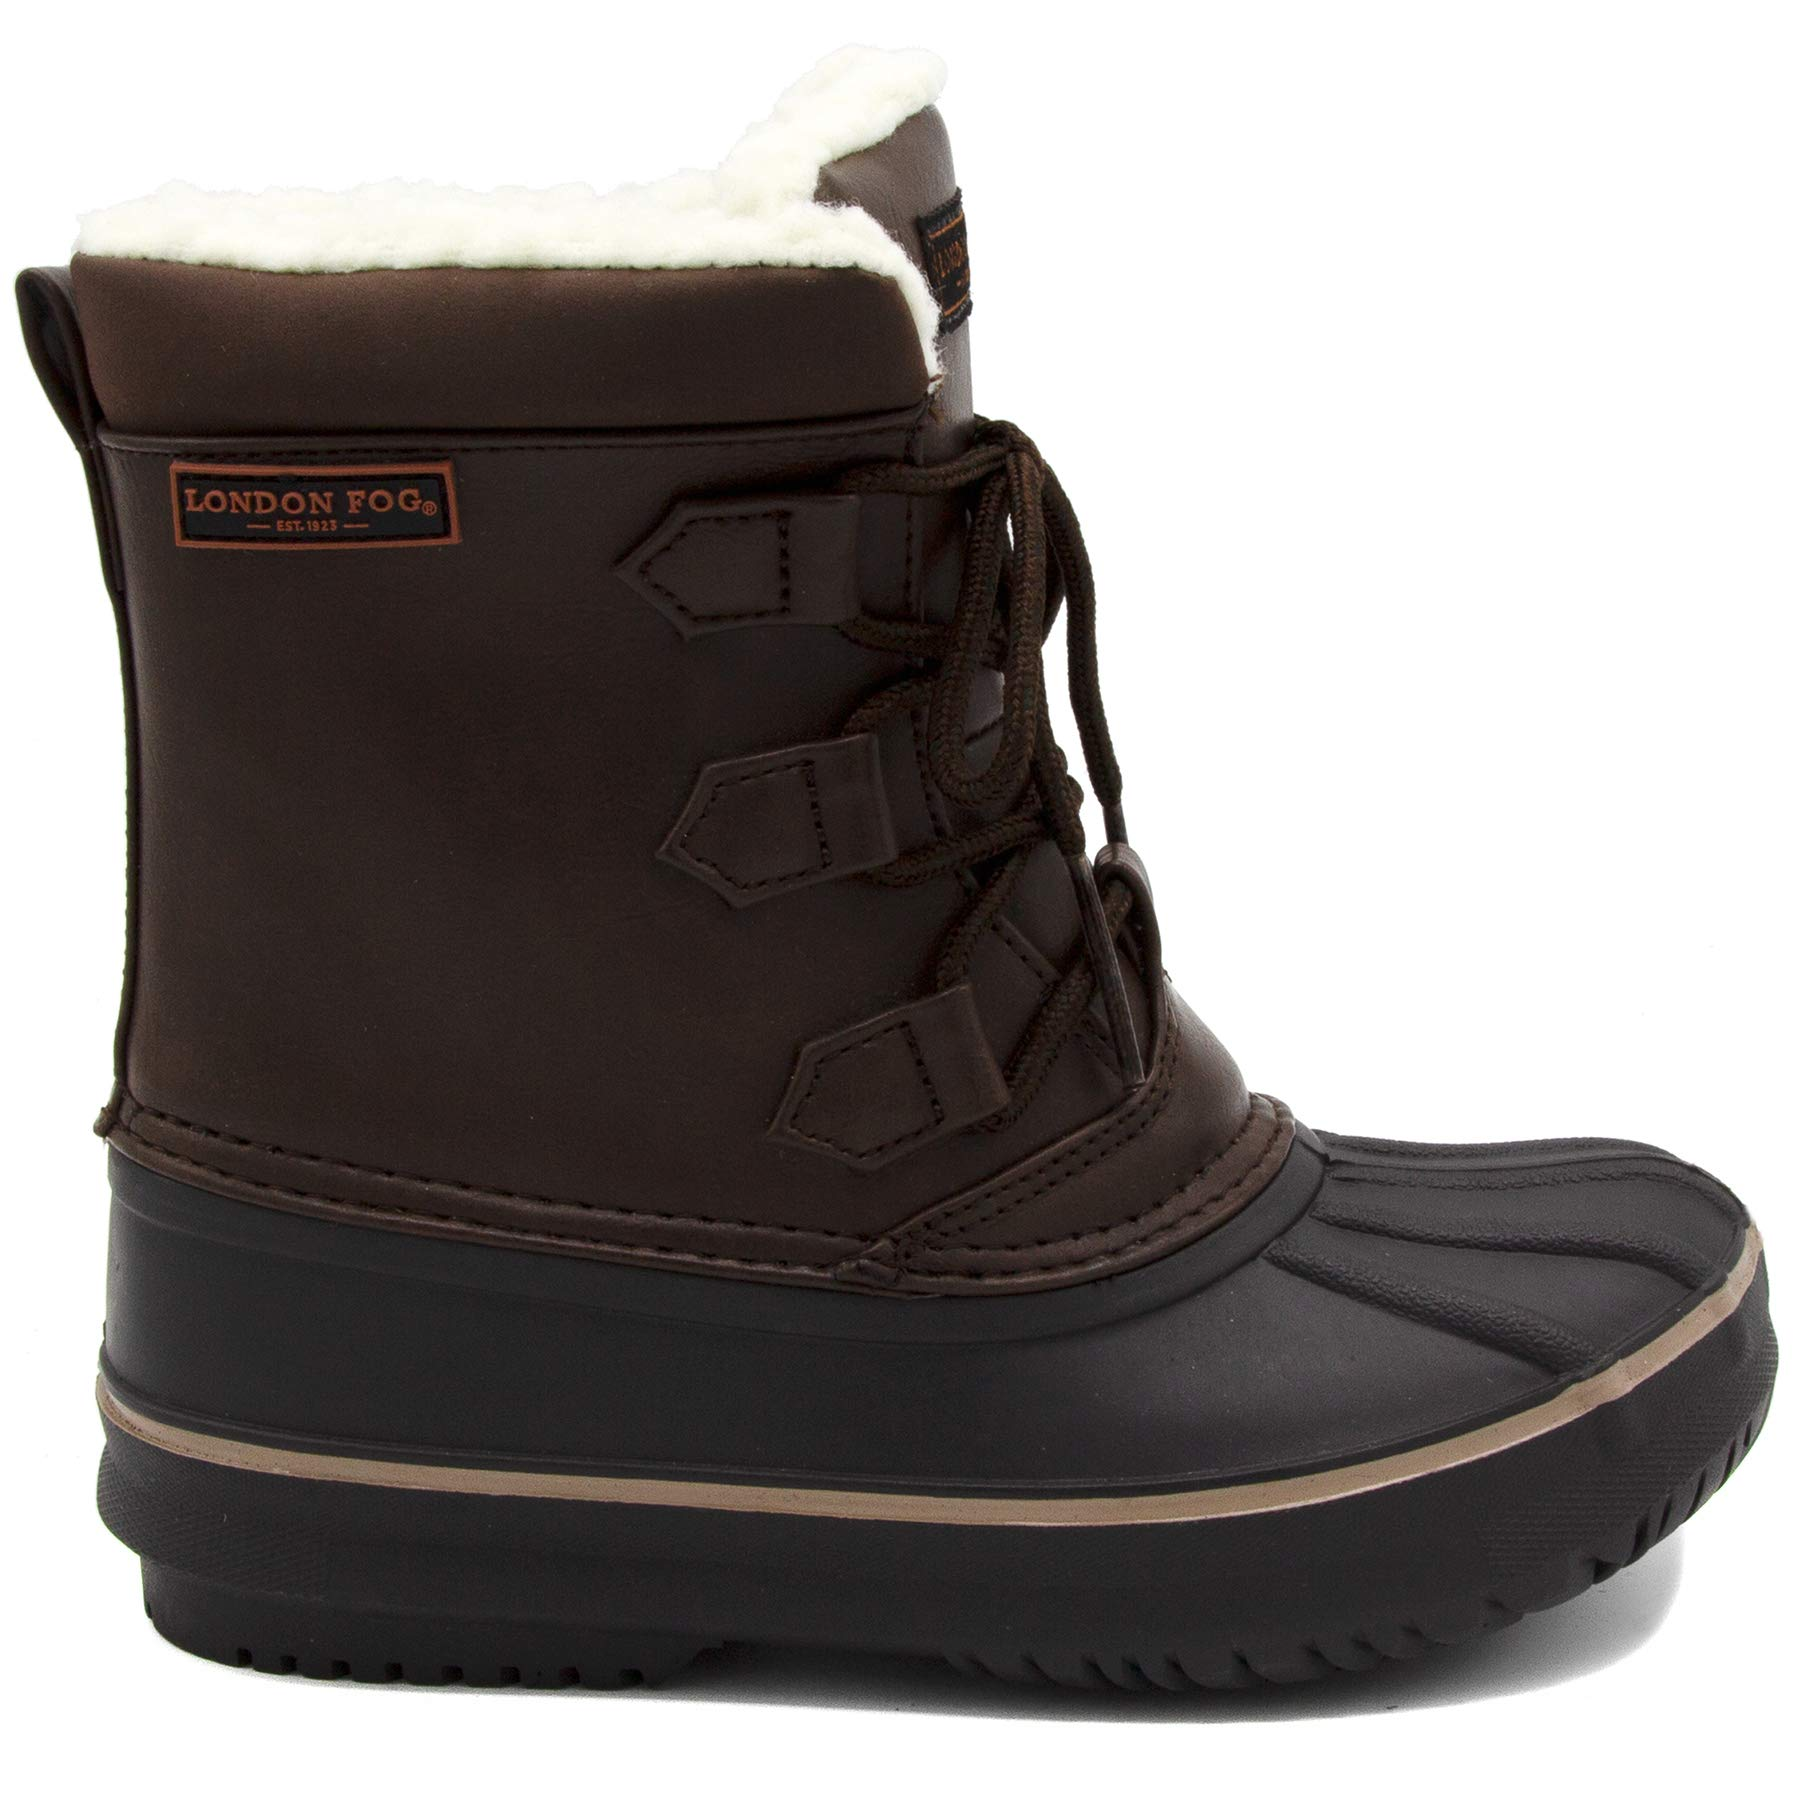 London Fog Boys Cheshire Cold Weather Snow Boot Brown 4 by London Fog (Image #2)